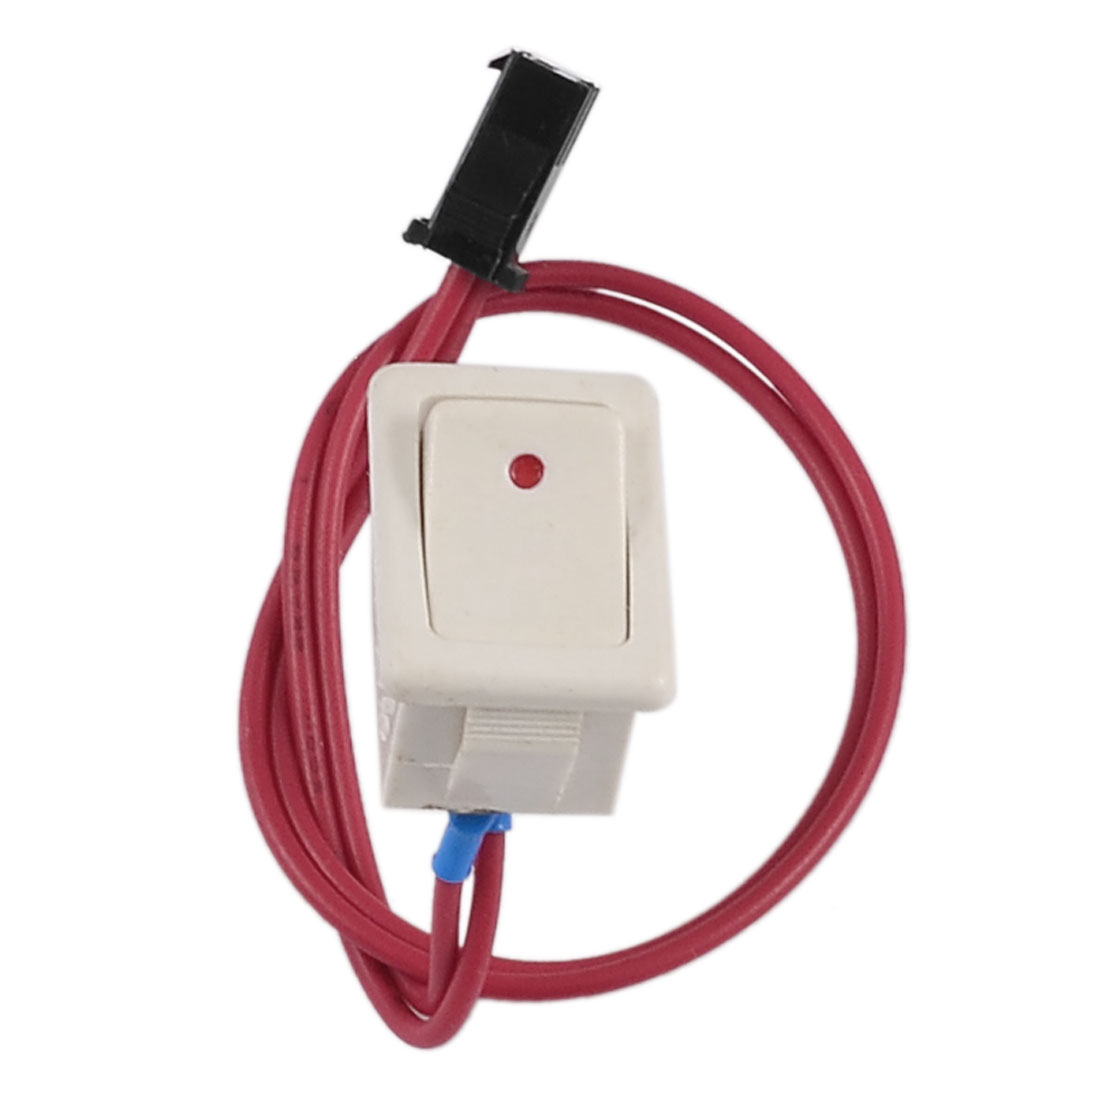 ON/OFF 2 Position SPST 2 Pole Snap-in Boat Rocker Switch w Red Cable